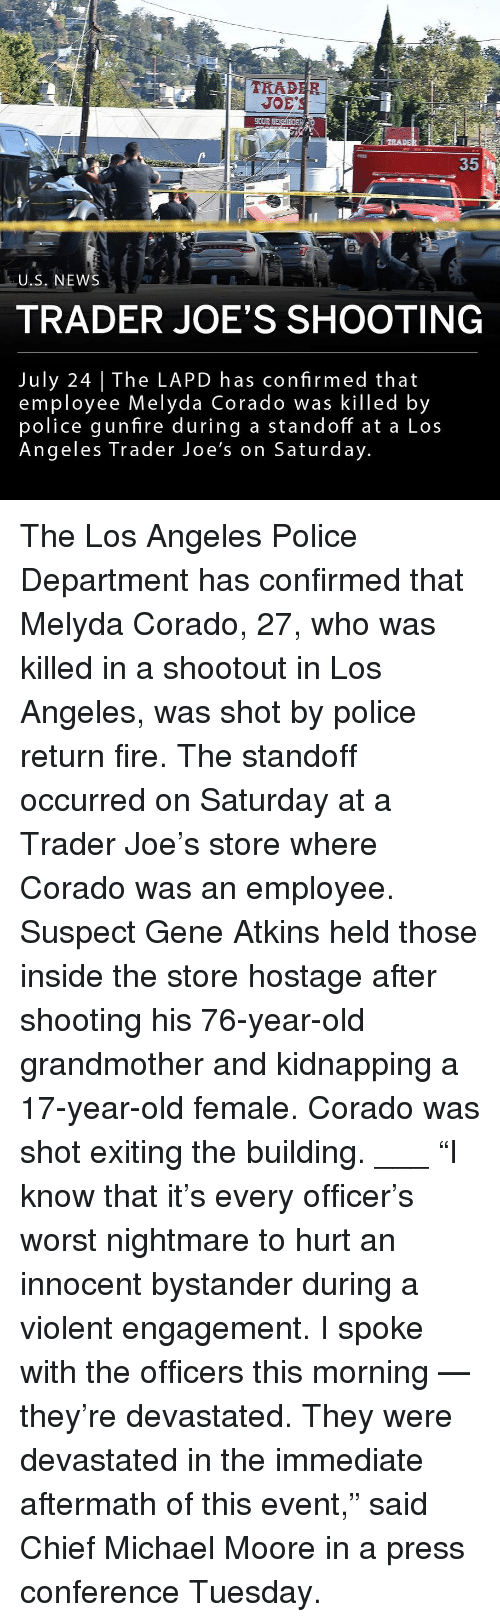 """joes: 1-2  TRAD  EOUR  35  U.S. NEWS  TRADER JOE'S SHOOTING  July 24 The LAPD has confirmed that  employee Melyda Corado was killed by  police gunfire during a standoff at a Los  Angeles Trader Joe's on Saturday The Los Angeles Police Department has confirmed that Melyda Corado, 27, who was killed in a shootout in Los Angeles, was shot by police return fire. The standoff occurred on Saturday at a Trader Joe's store where Corado was an employee. Suspect Gene Atkins held those inside the store hostage after shooting his 76-year-old grandmother and kidnapping a 17-year-old female. Corado was shot exiting the building. ___ """"I know that it's every officer's worst nightmare to hurt an innocent bystander during a violent engagement. I spoke with the officers this morning — they're devastated. They were devastated in the immediate aftermath of this event,"""" said Chief Michael Moore in a press conference Tuesday."""